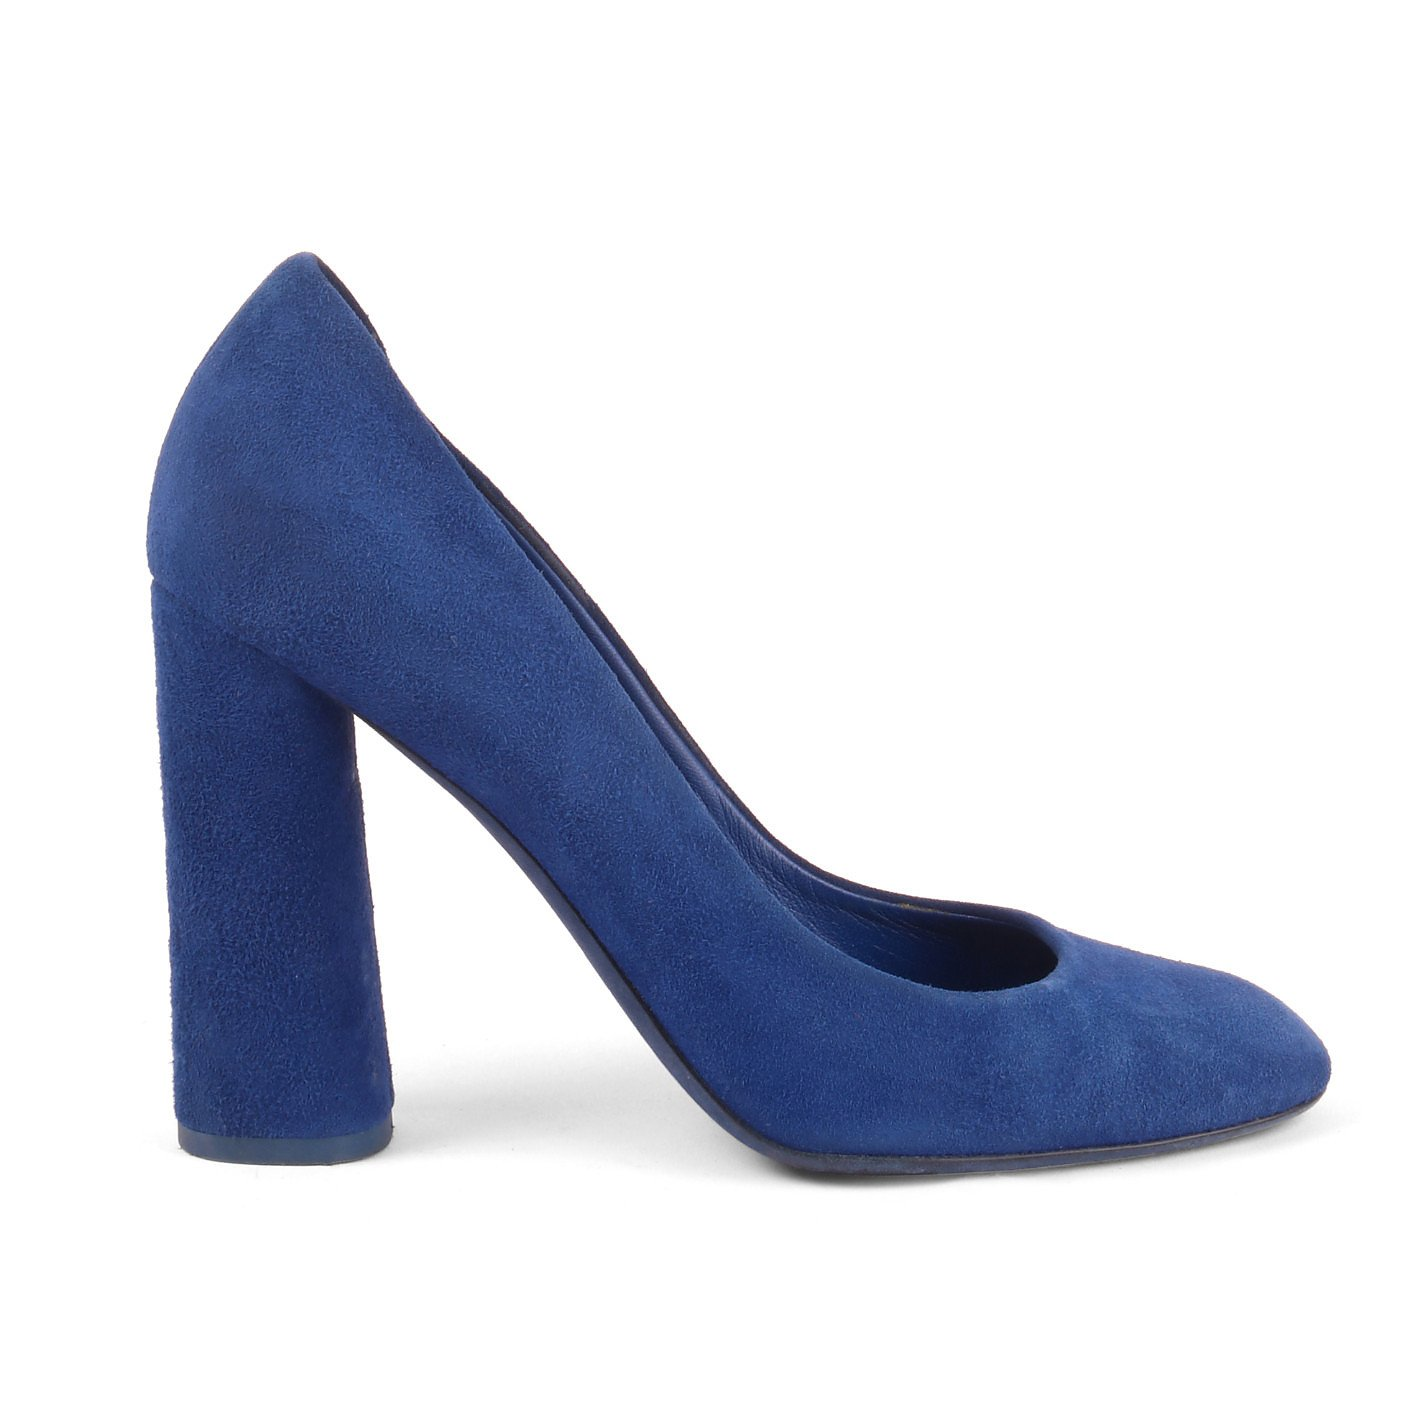 Dior Suede Block Heel Pumps